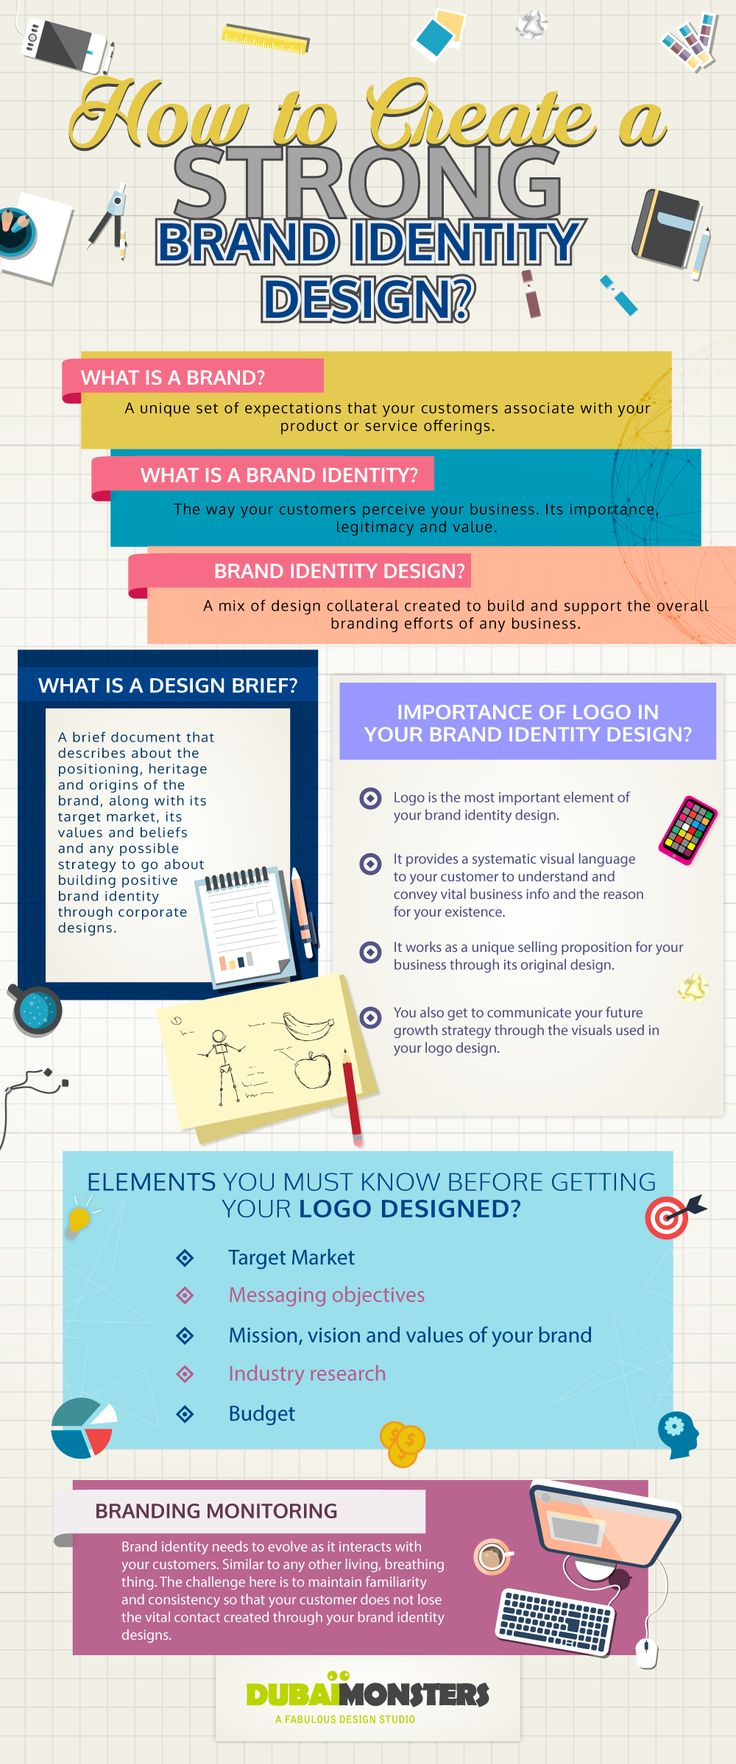 How To Create a Strong Brand Identity Design? #Infographic #Branding #Design